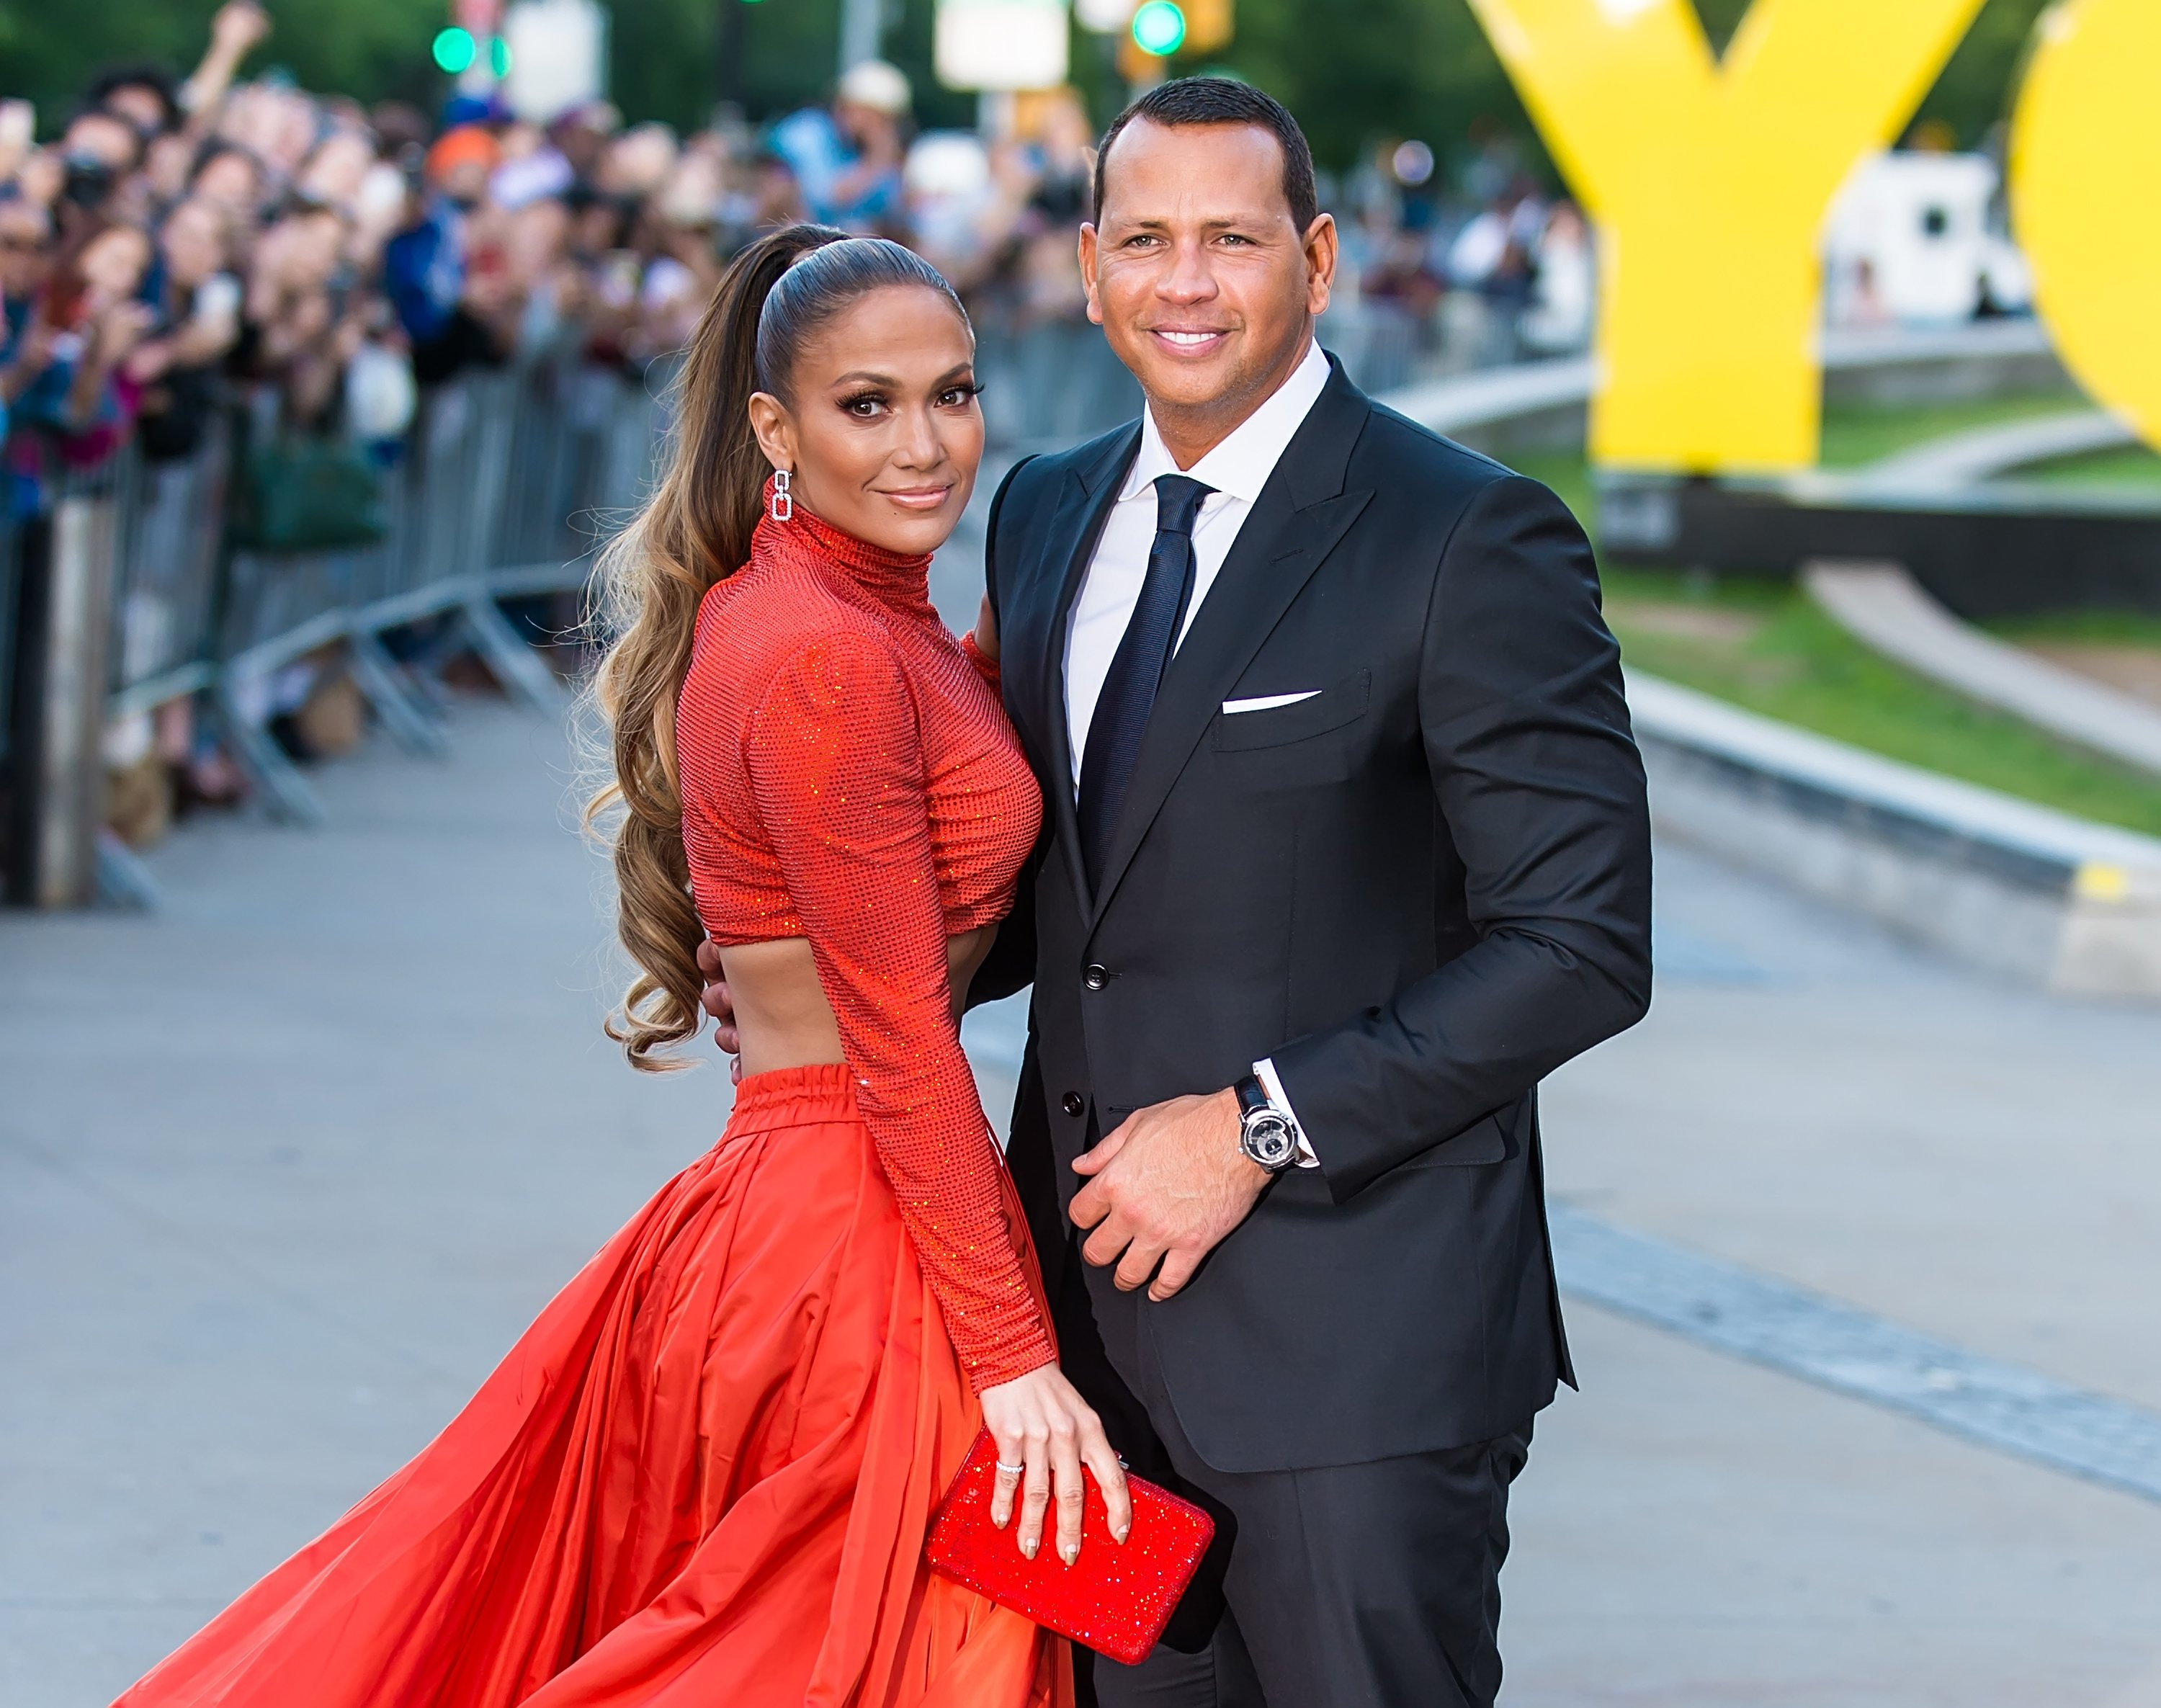 Jennifer Lopez and Alex Rodriguez are seen arriving to the 2019 CFDA Fashion Awards on June 3, 2019 | Photo: Getty Images